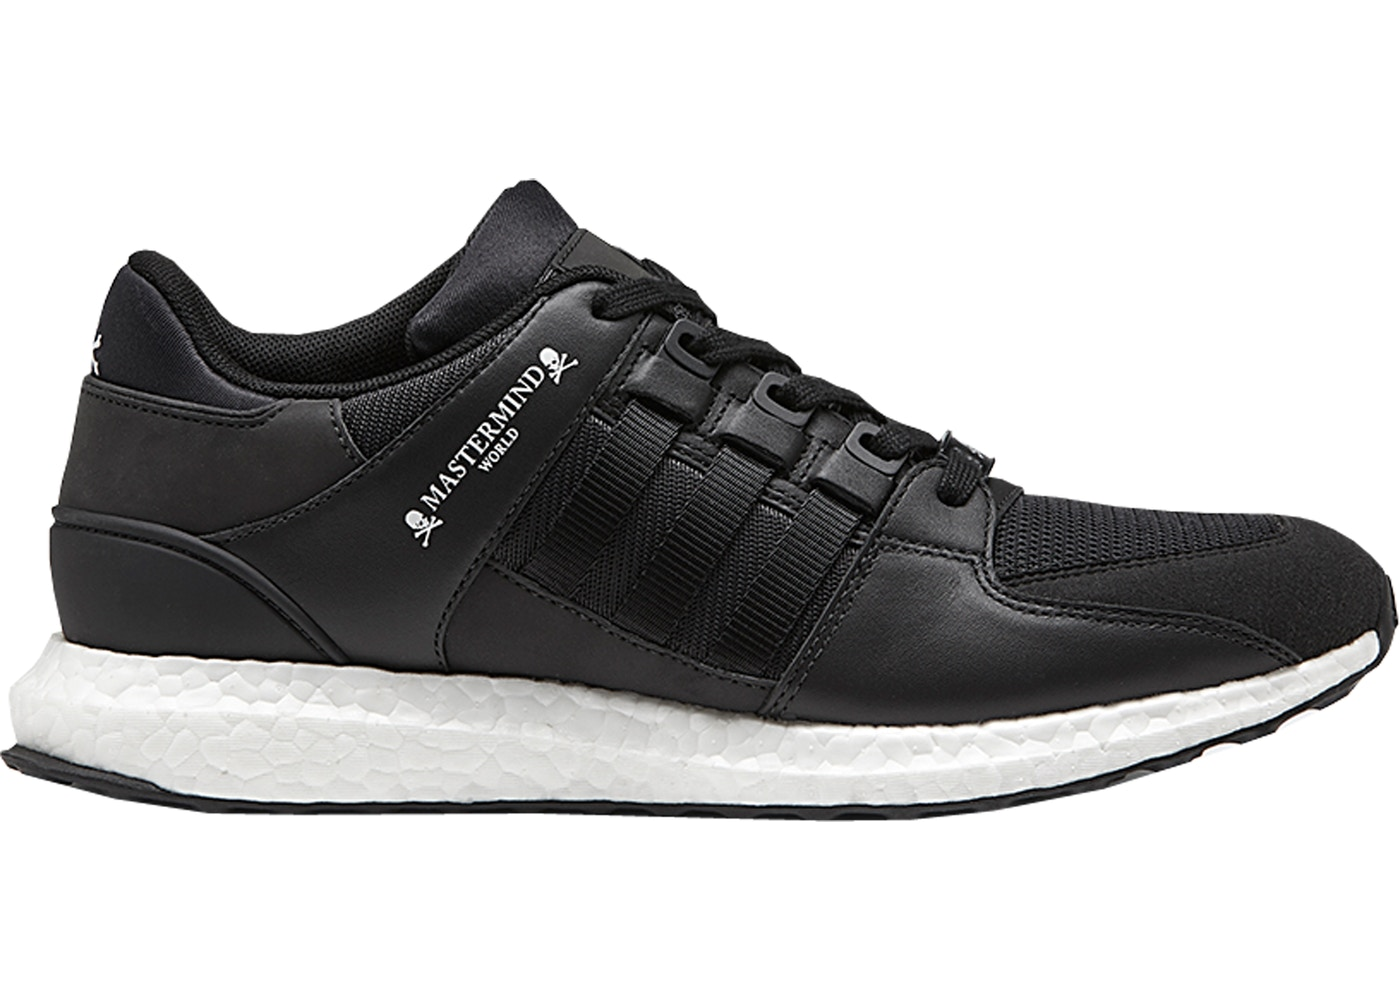 quality design 00d68 8c5b6 adidas EQT Support Ultra mastermind Black